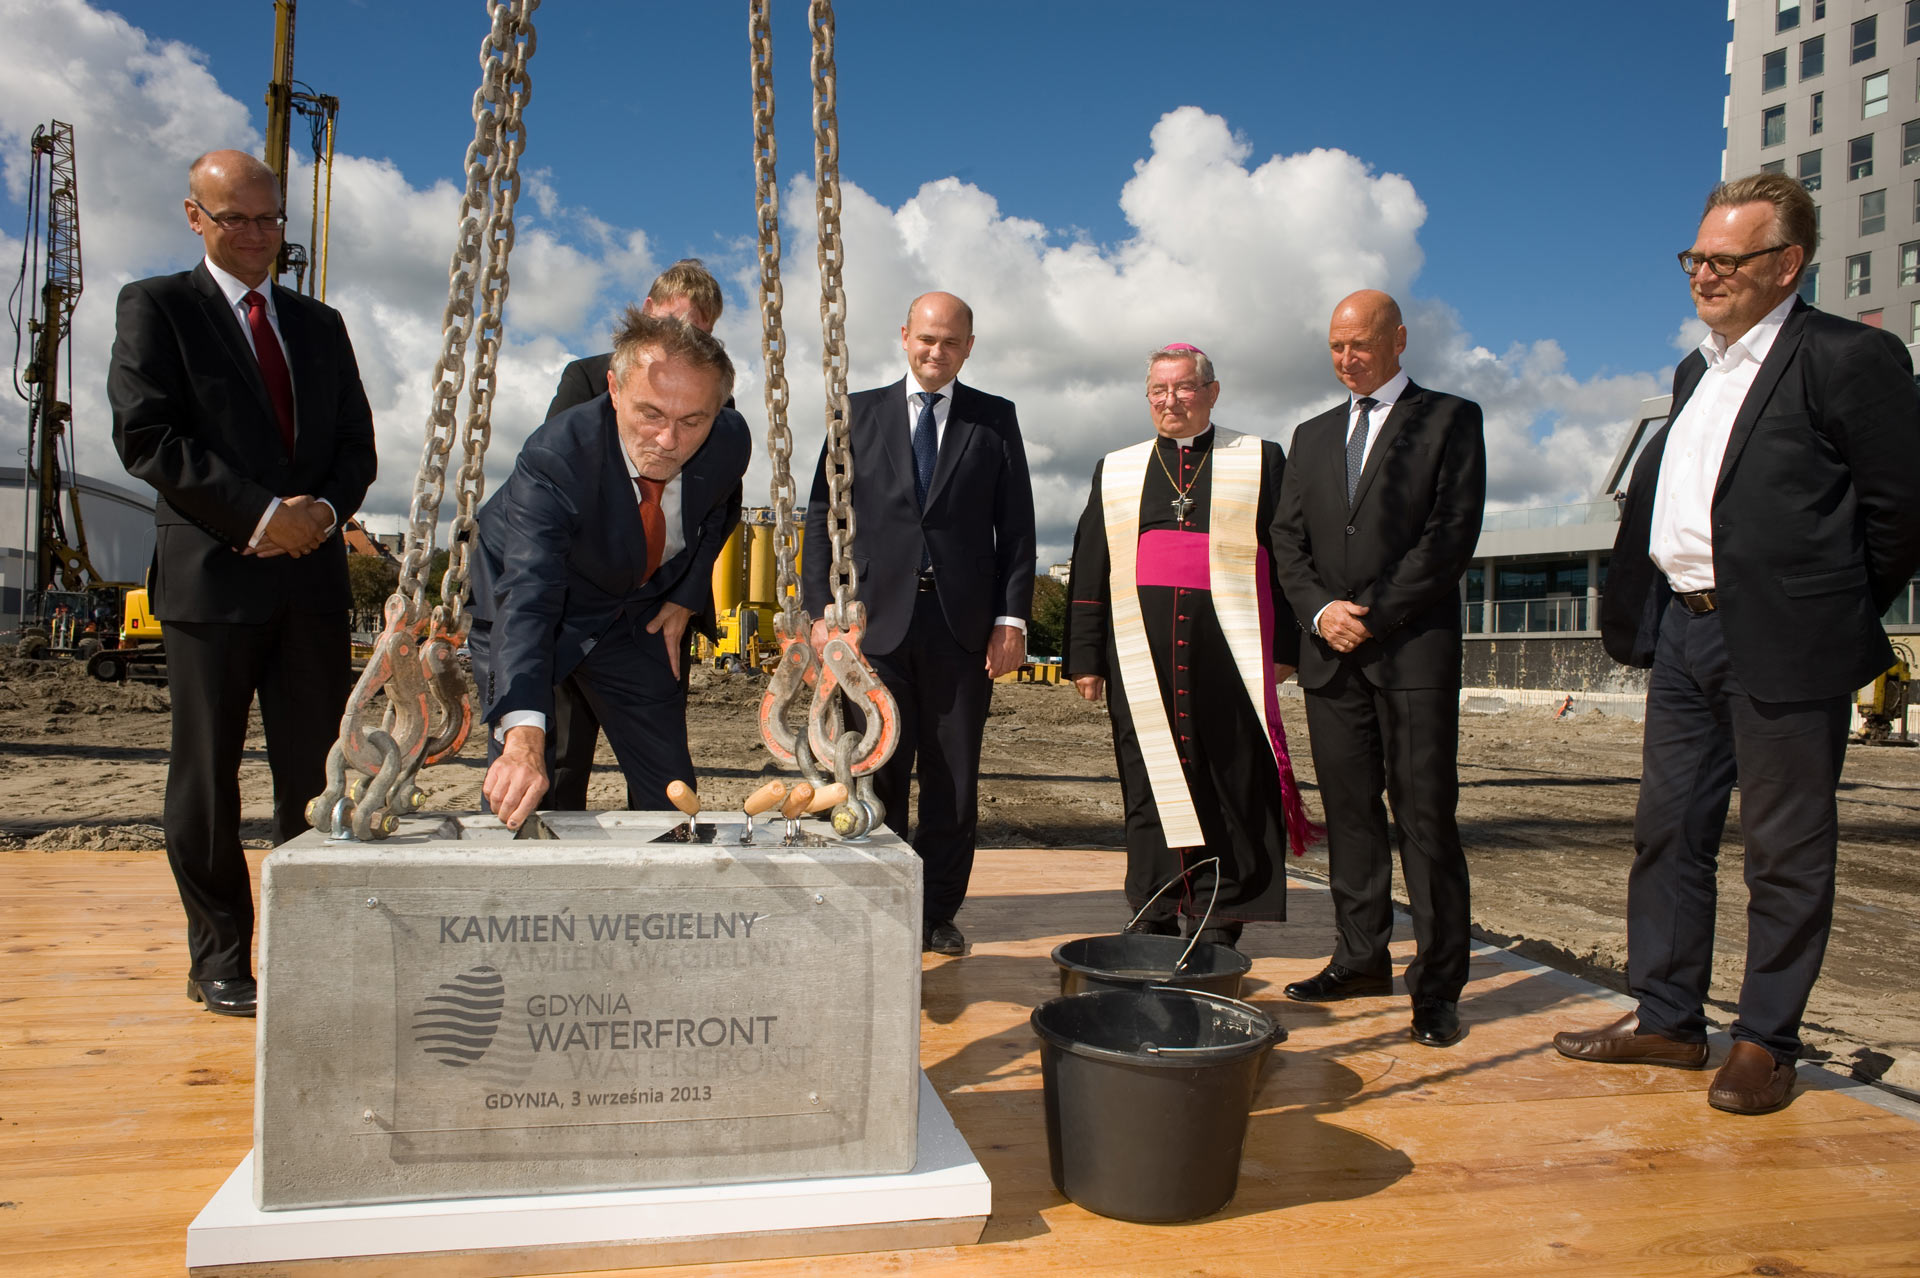 Foundation stone in Gdynia Waterfront